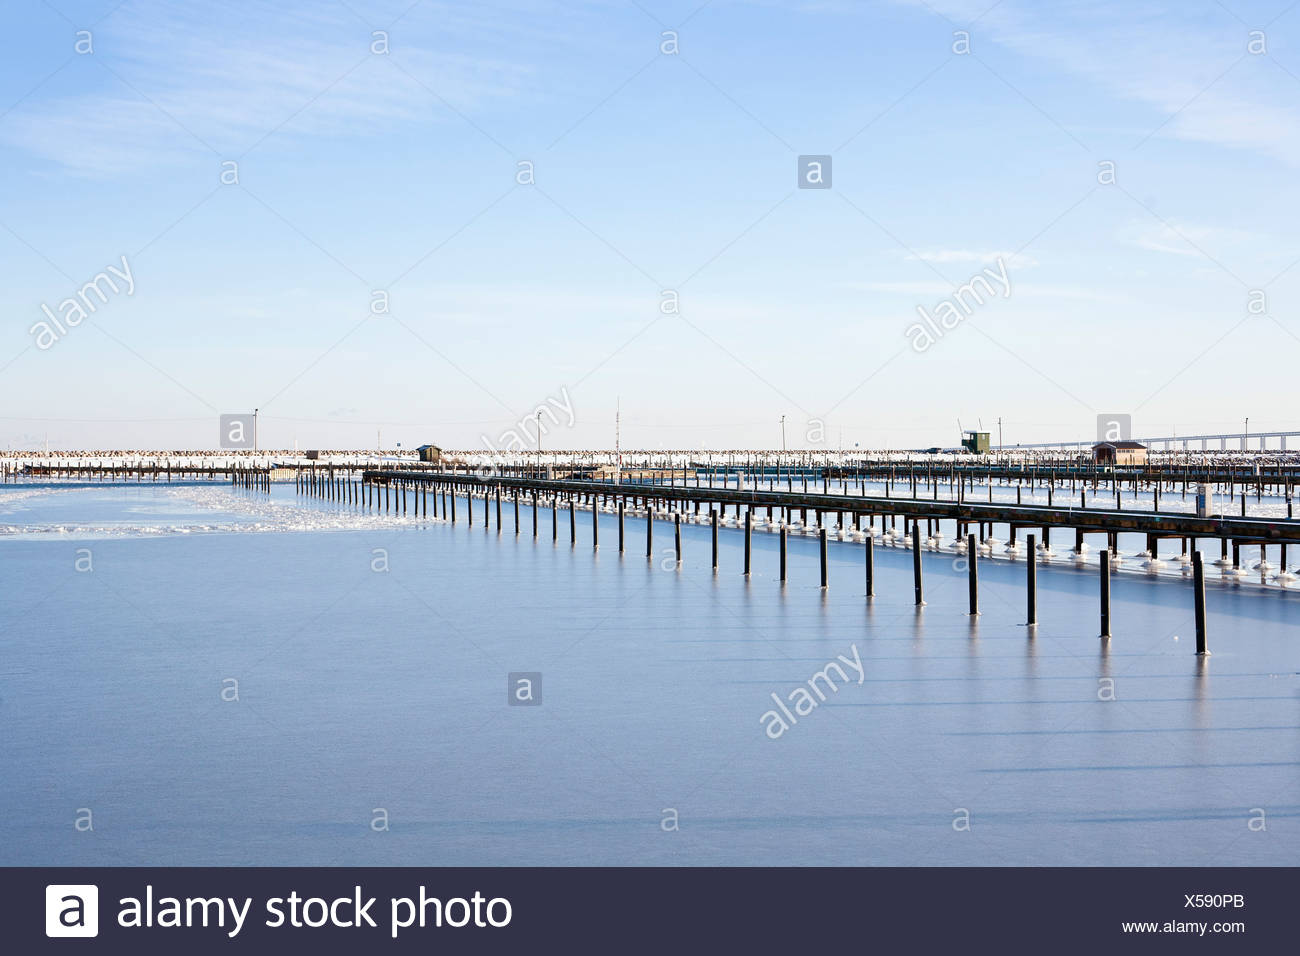 Beautiful view of harbor in the winter - Stock Image